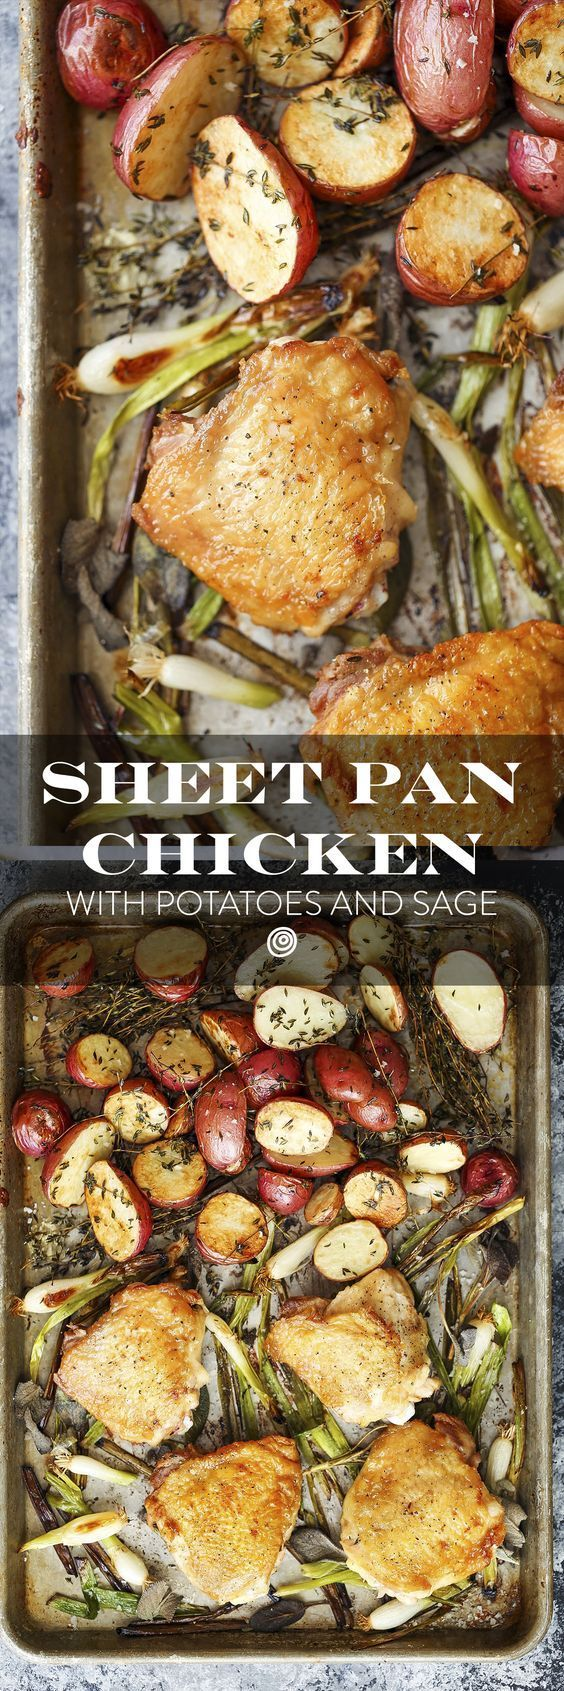 Sheet Pan Herbed Chicken Thighs with Roasted Potatoes and Sage Recipe. Sheet pan dinners and suppers are the ultimate in one pan recipes. This quick and EASY 30 minute dish is great for kids - picky eaters - and adults. Great for a weeknight meal or a sunday supper with your family. Comfort food at its finest, with an entree and a side dish all in one. Try with roasted chicken thighs or breasts this fall or winter. Whole30 / Whole 30 approved!